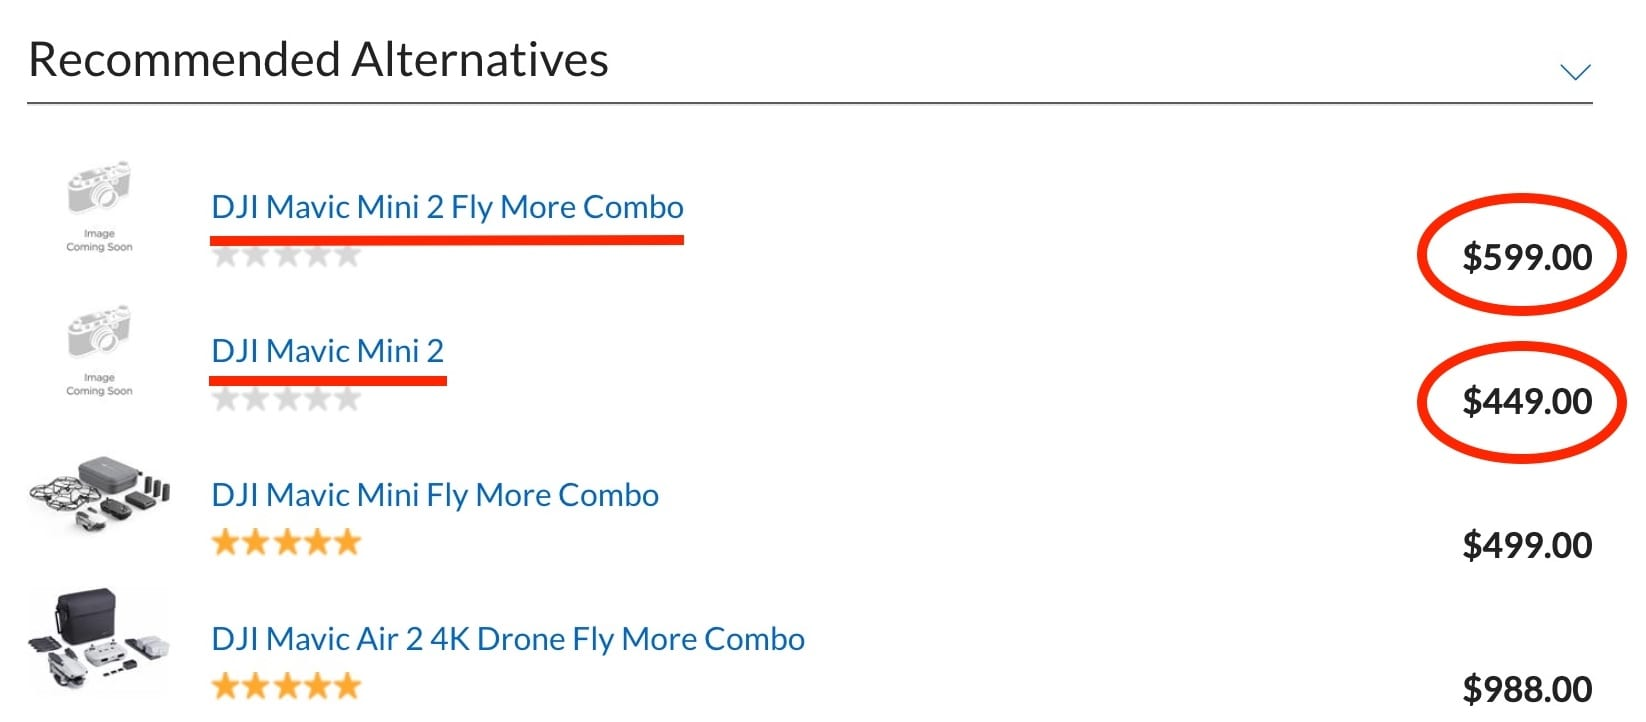 The Adorama website shows that the DJI Mavic Mini 2 will be priced at $449 and at $599 for the DJI Mavic Mini 2 Fly More Combo.